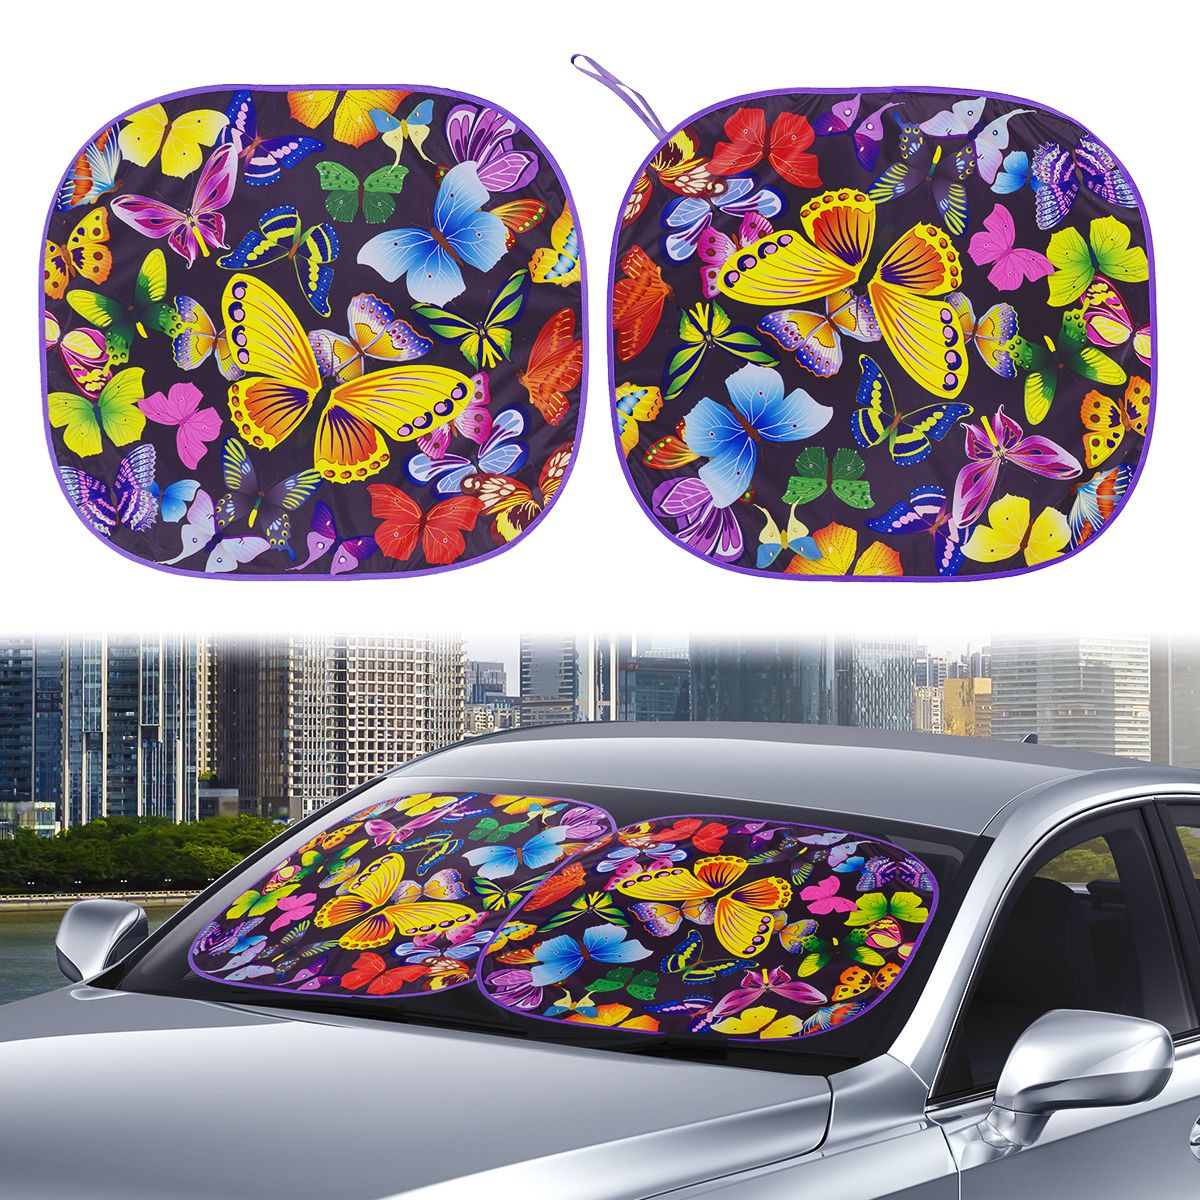 Auto Drive 2 Count Universal Multicolor Butterfly Twist Sunshade Product Size 28.5'' x 31.5''